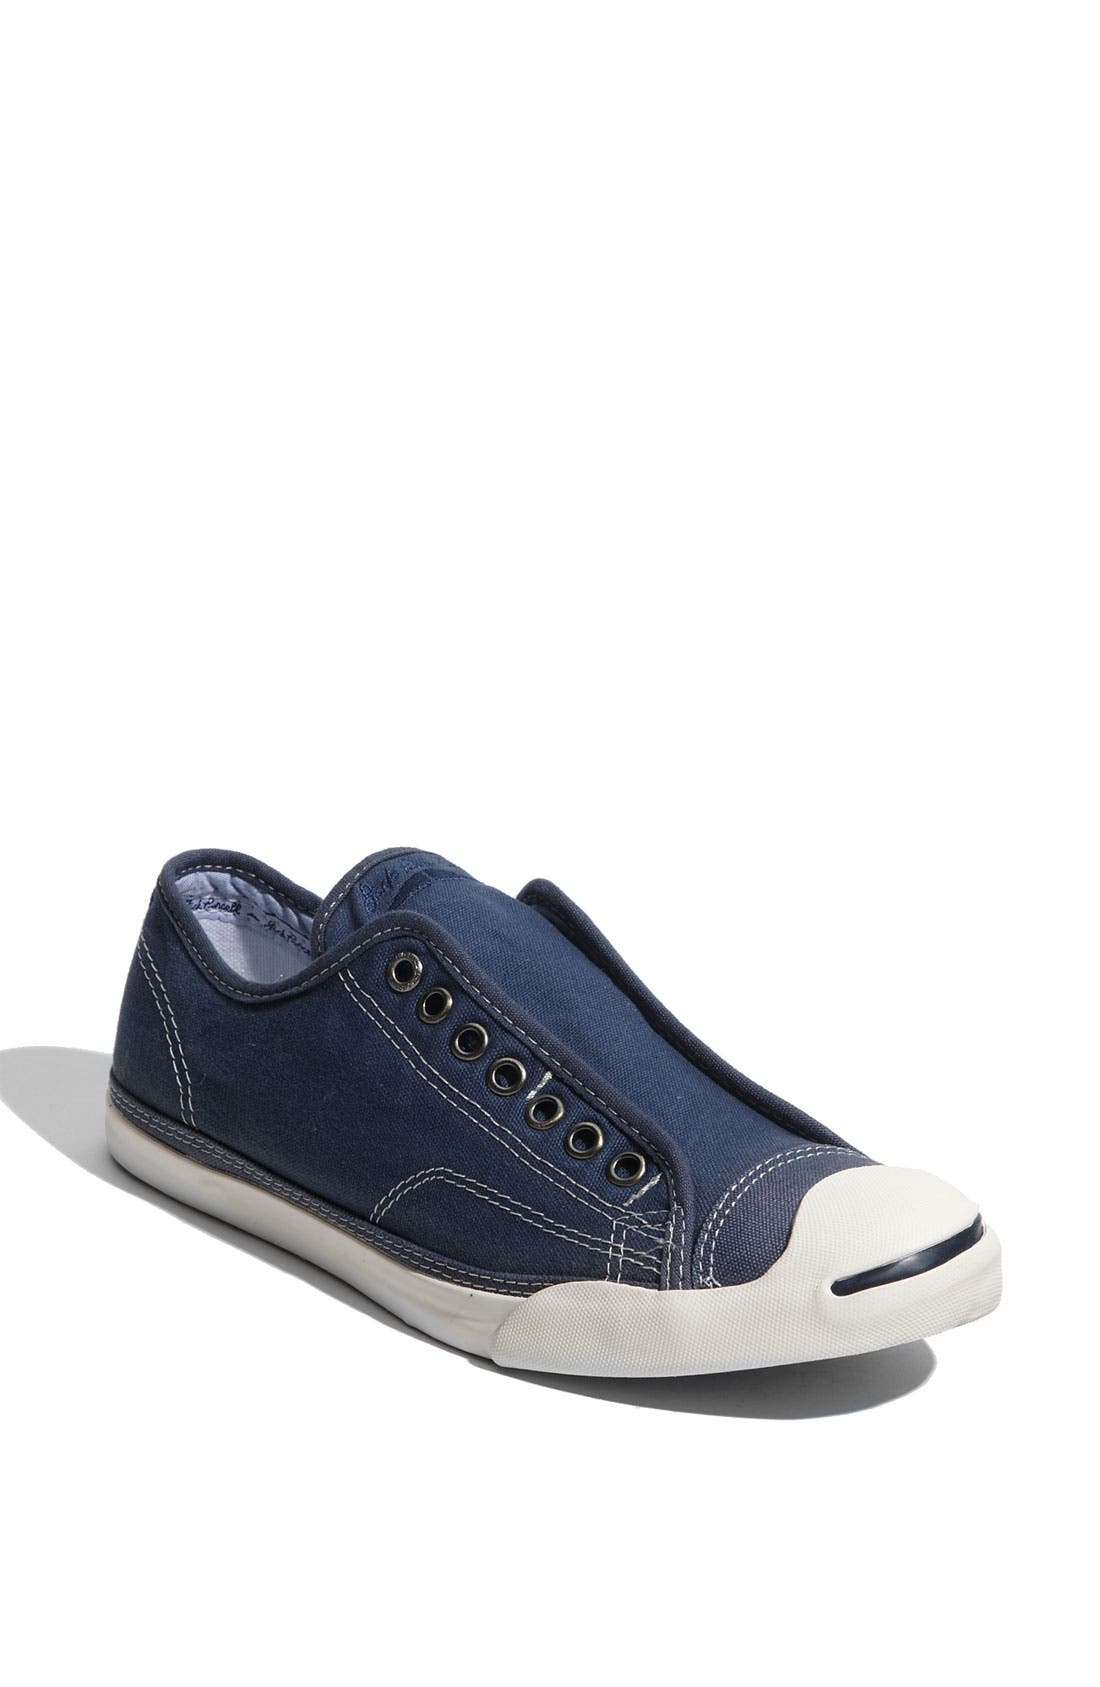 Main Image - Converse 'Jack Purcell' Slip-On Sneaker (Women)